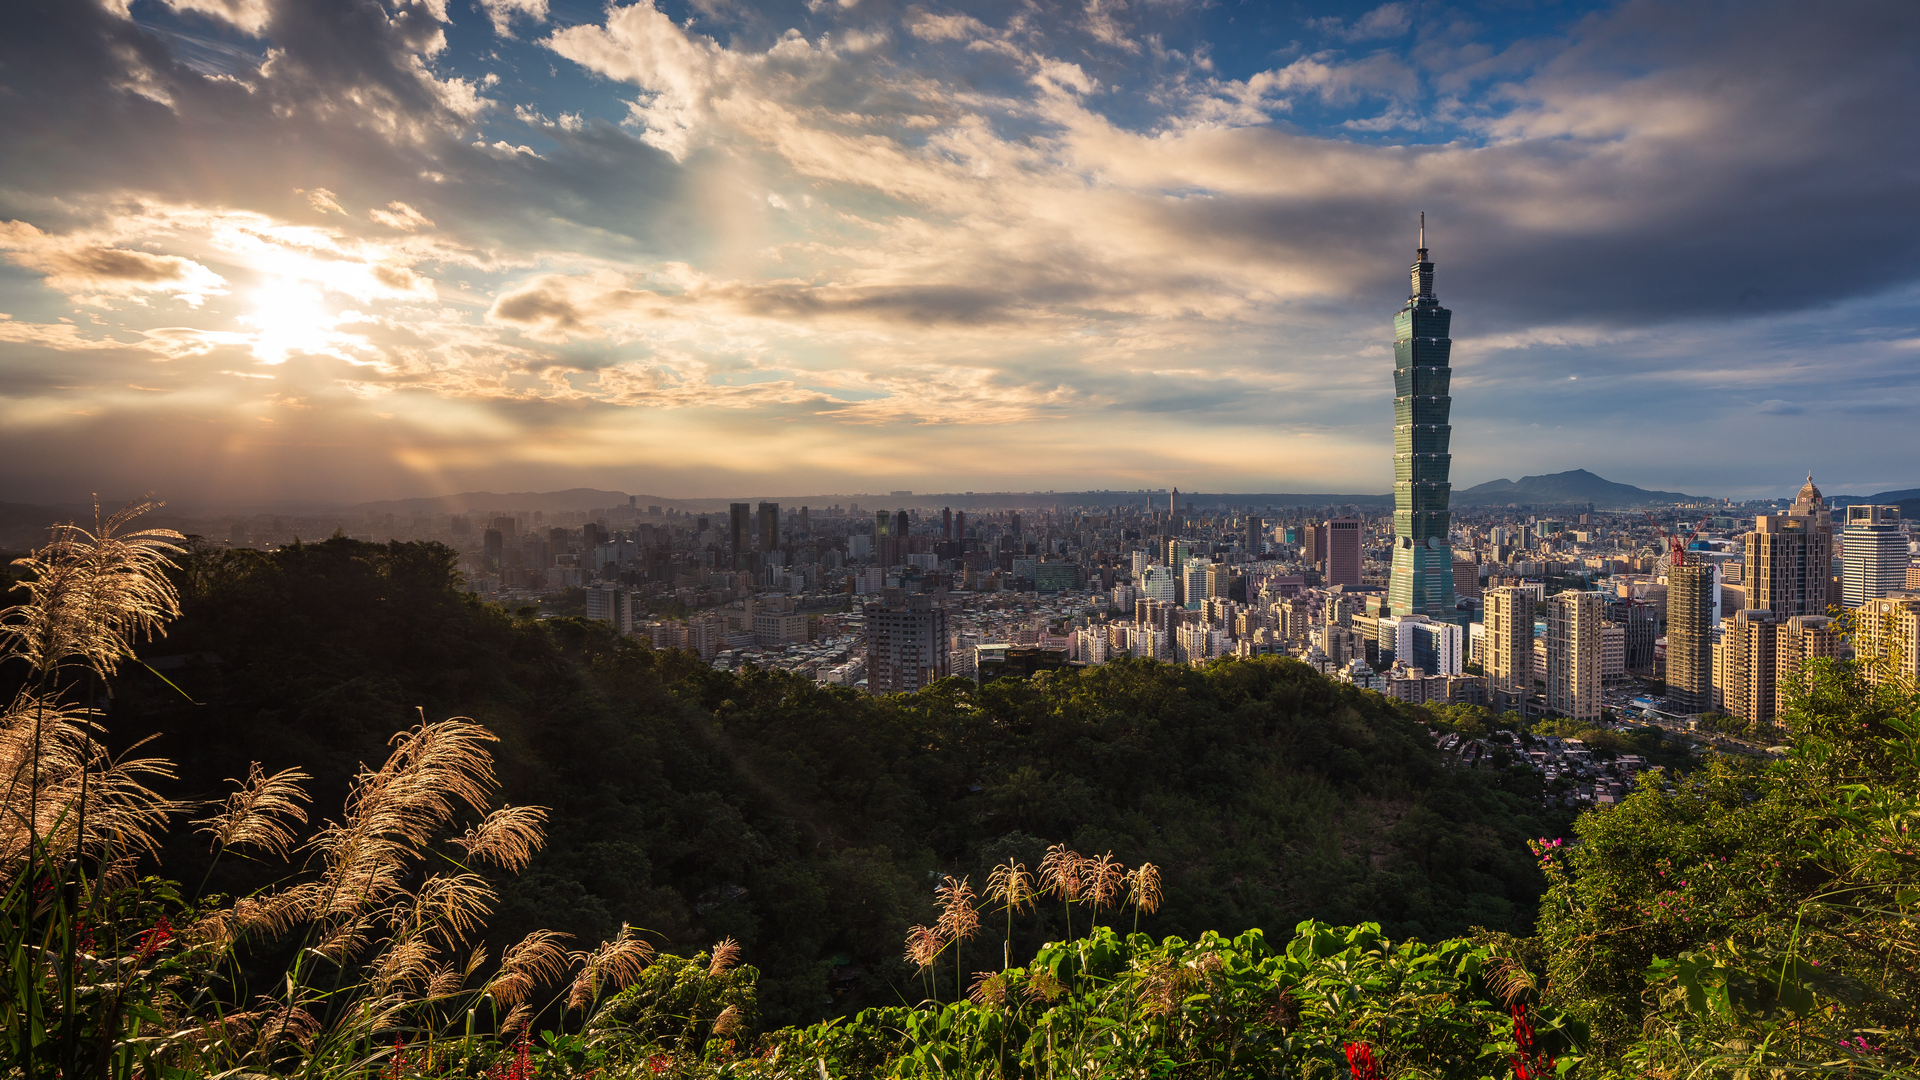 A view in Taiwan